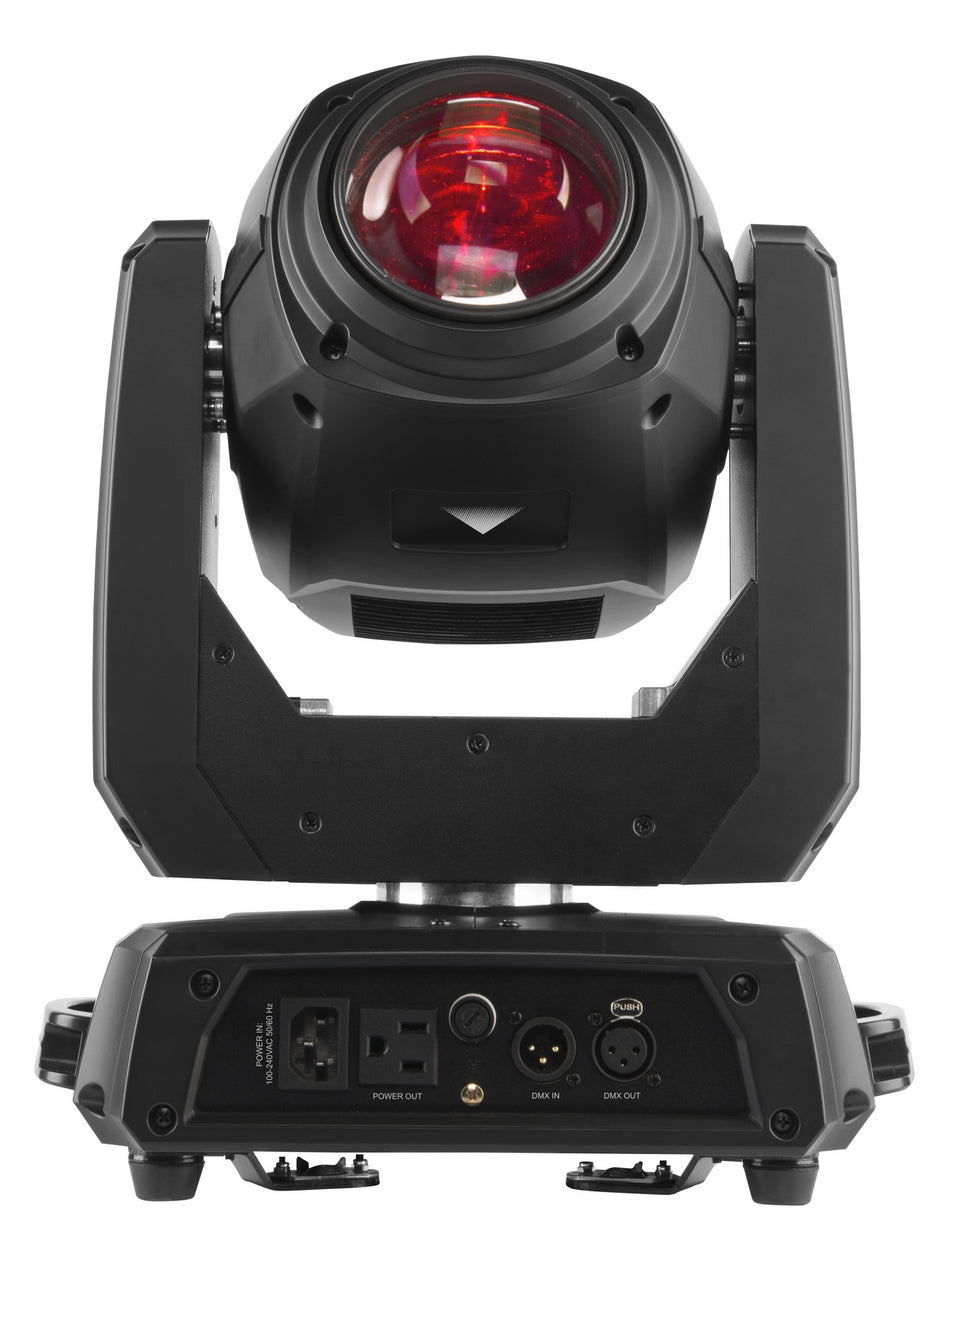 CHAUVET DJ Intimidator Beam 140SR Moving Head Lighting Fixture